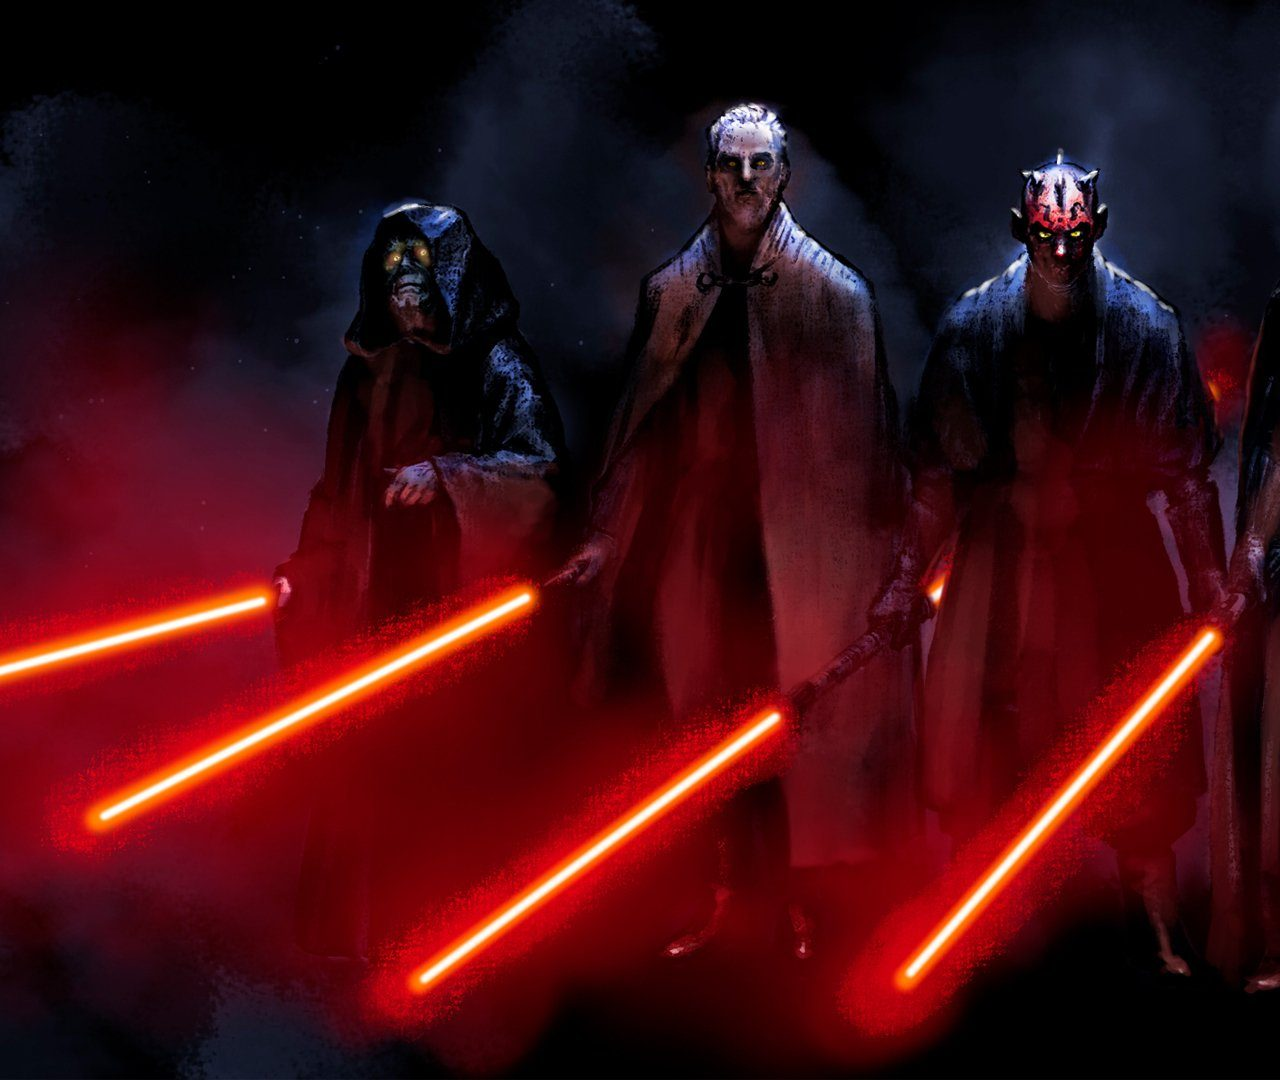 Sith Lords Star Wars Hd Wallpapers Hd Backgrounds Tumblr Backgrounds Images Pictures